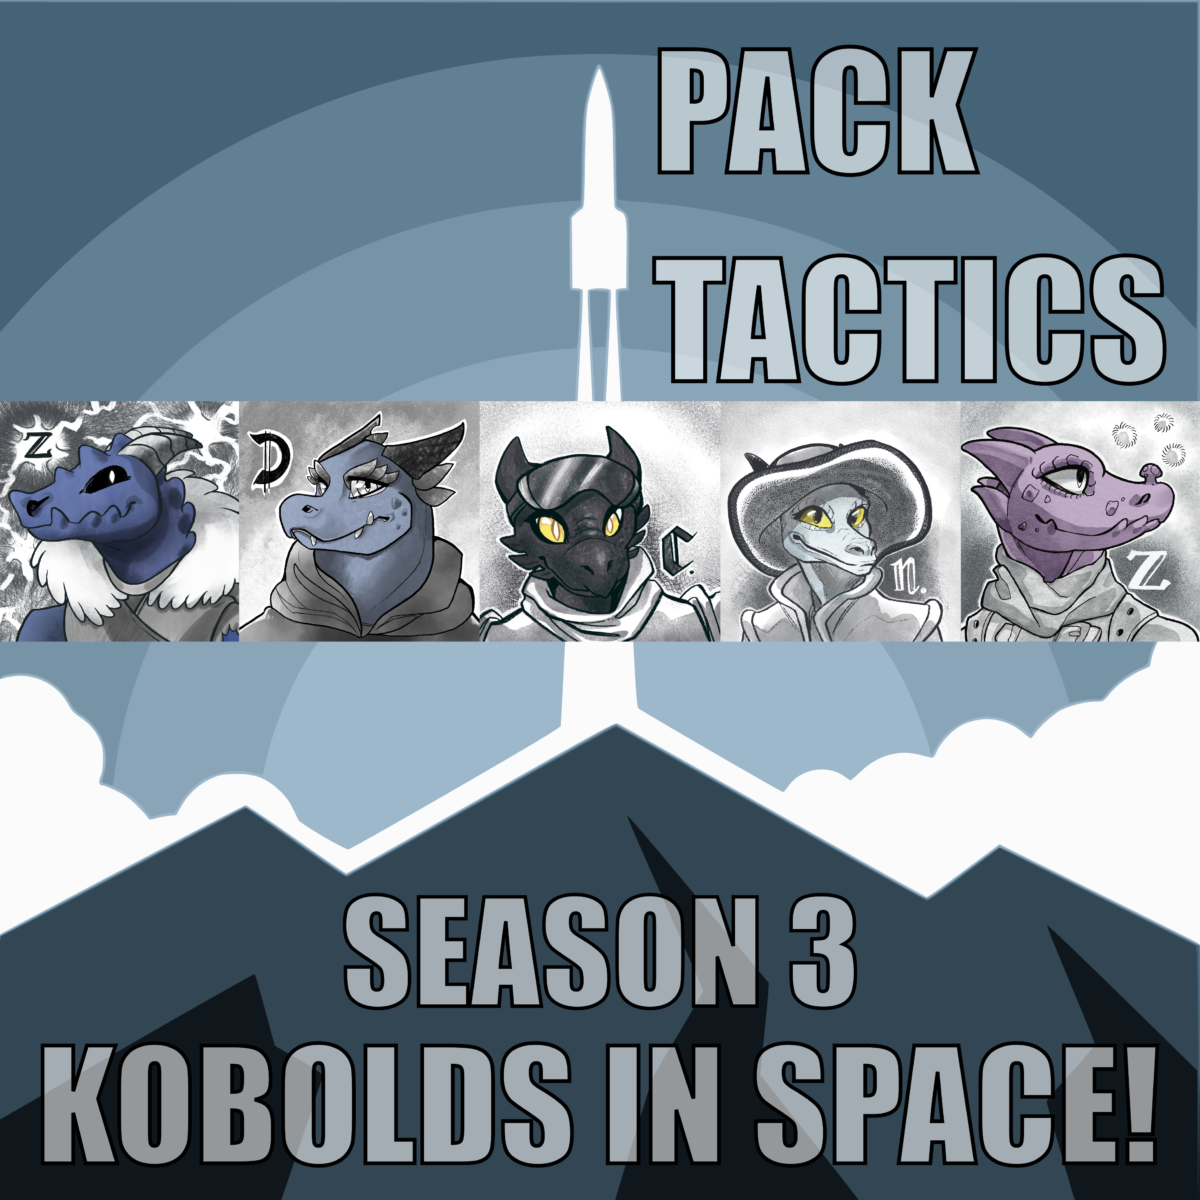 Pack Tactics S3 Ep 08: All The Way Down